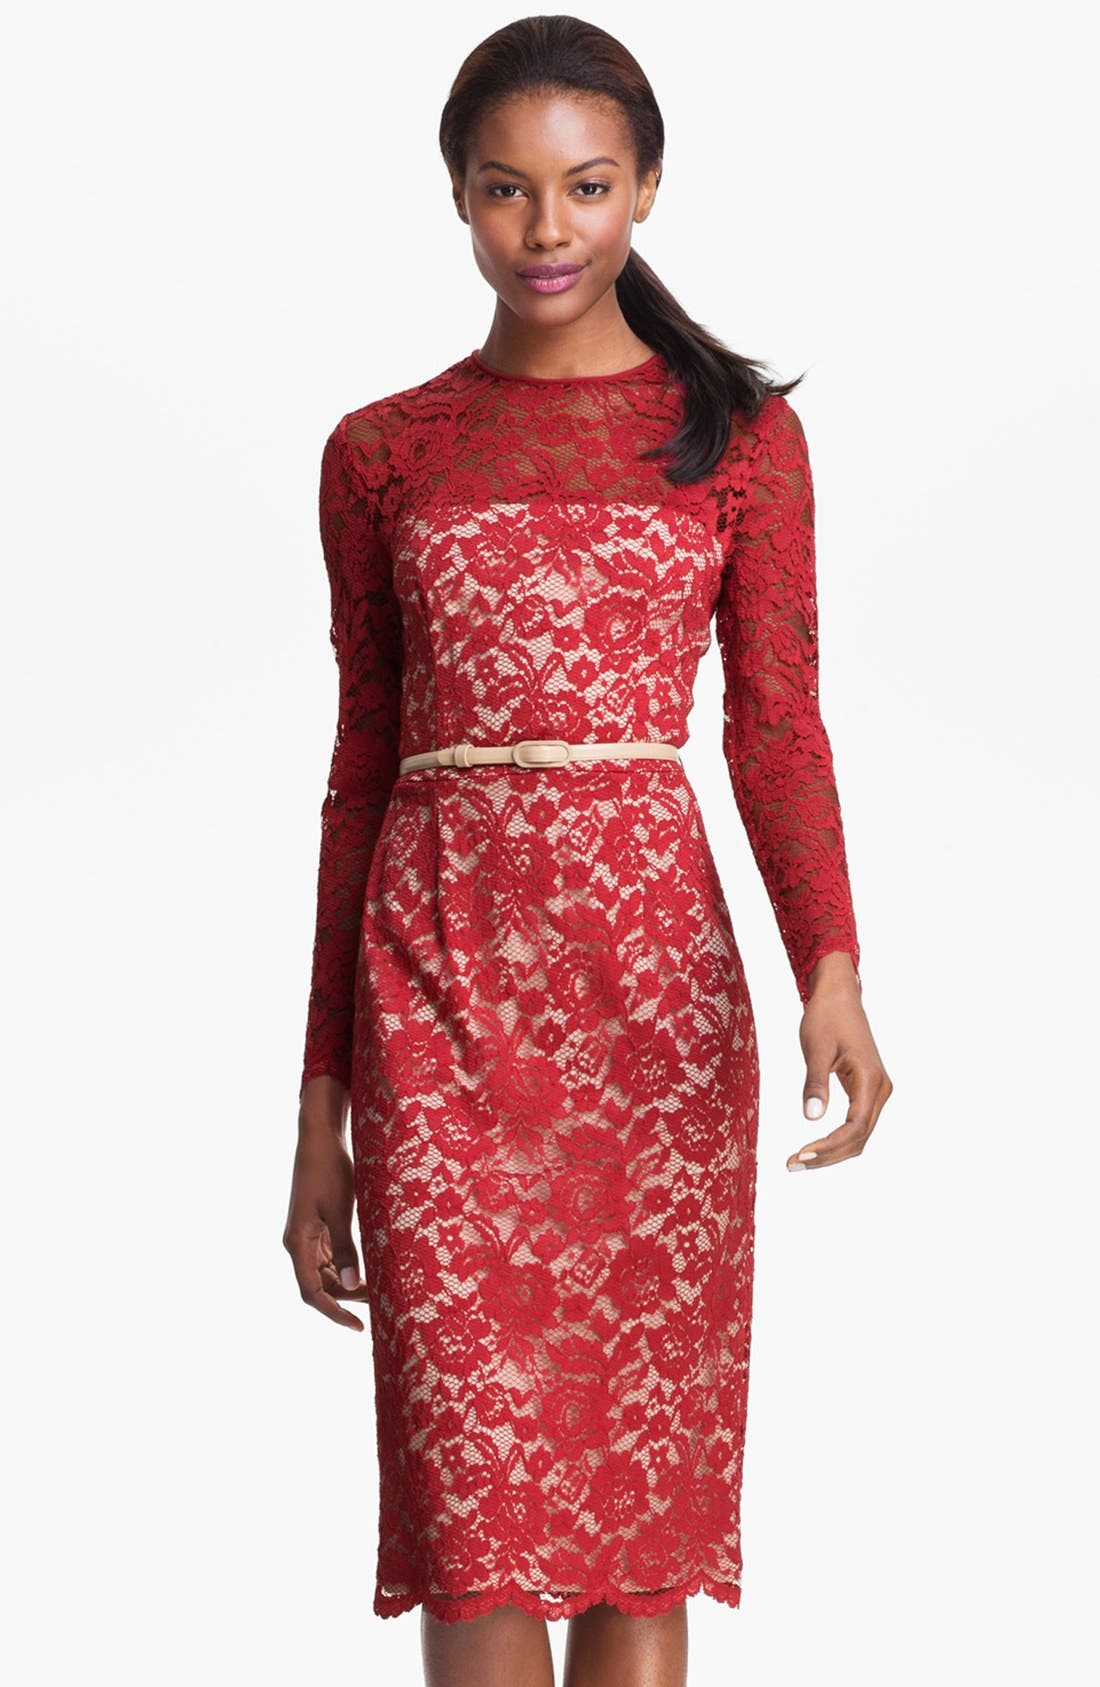 Alternate Image 1 Selected - Maggy London Embroidered Lace Overlay Midi Dress (Regular & Petite)